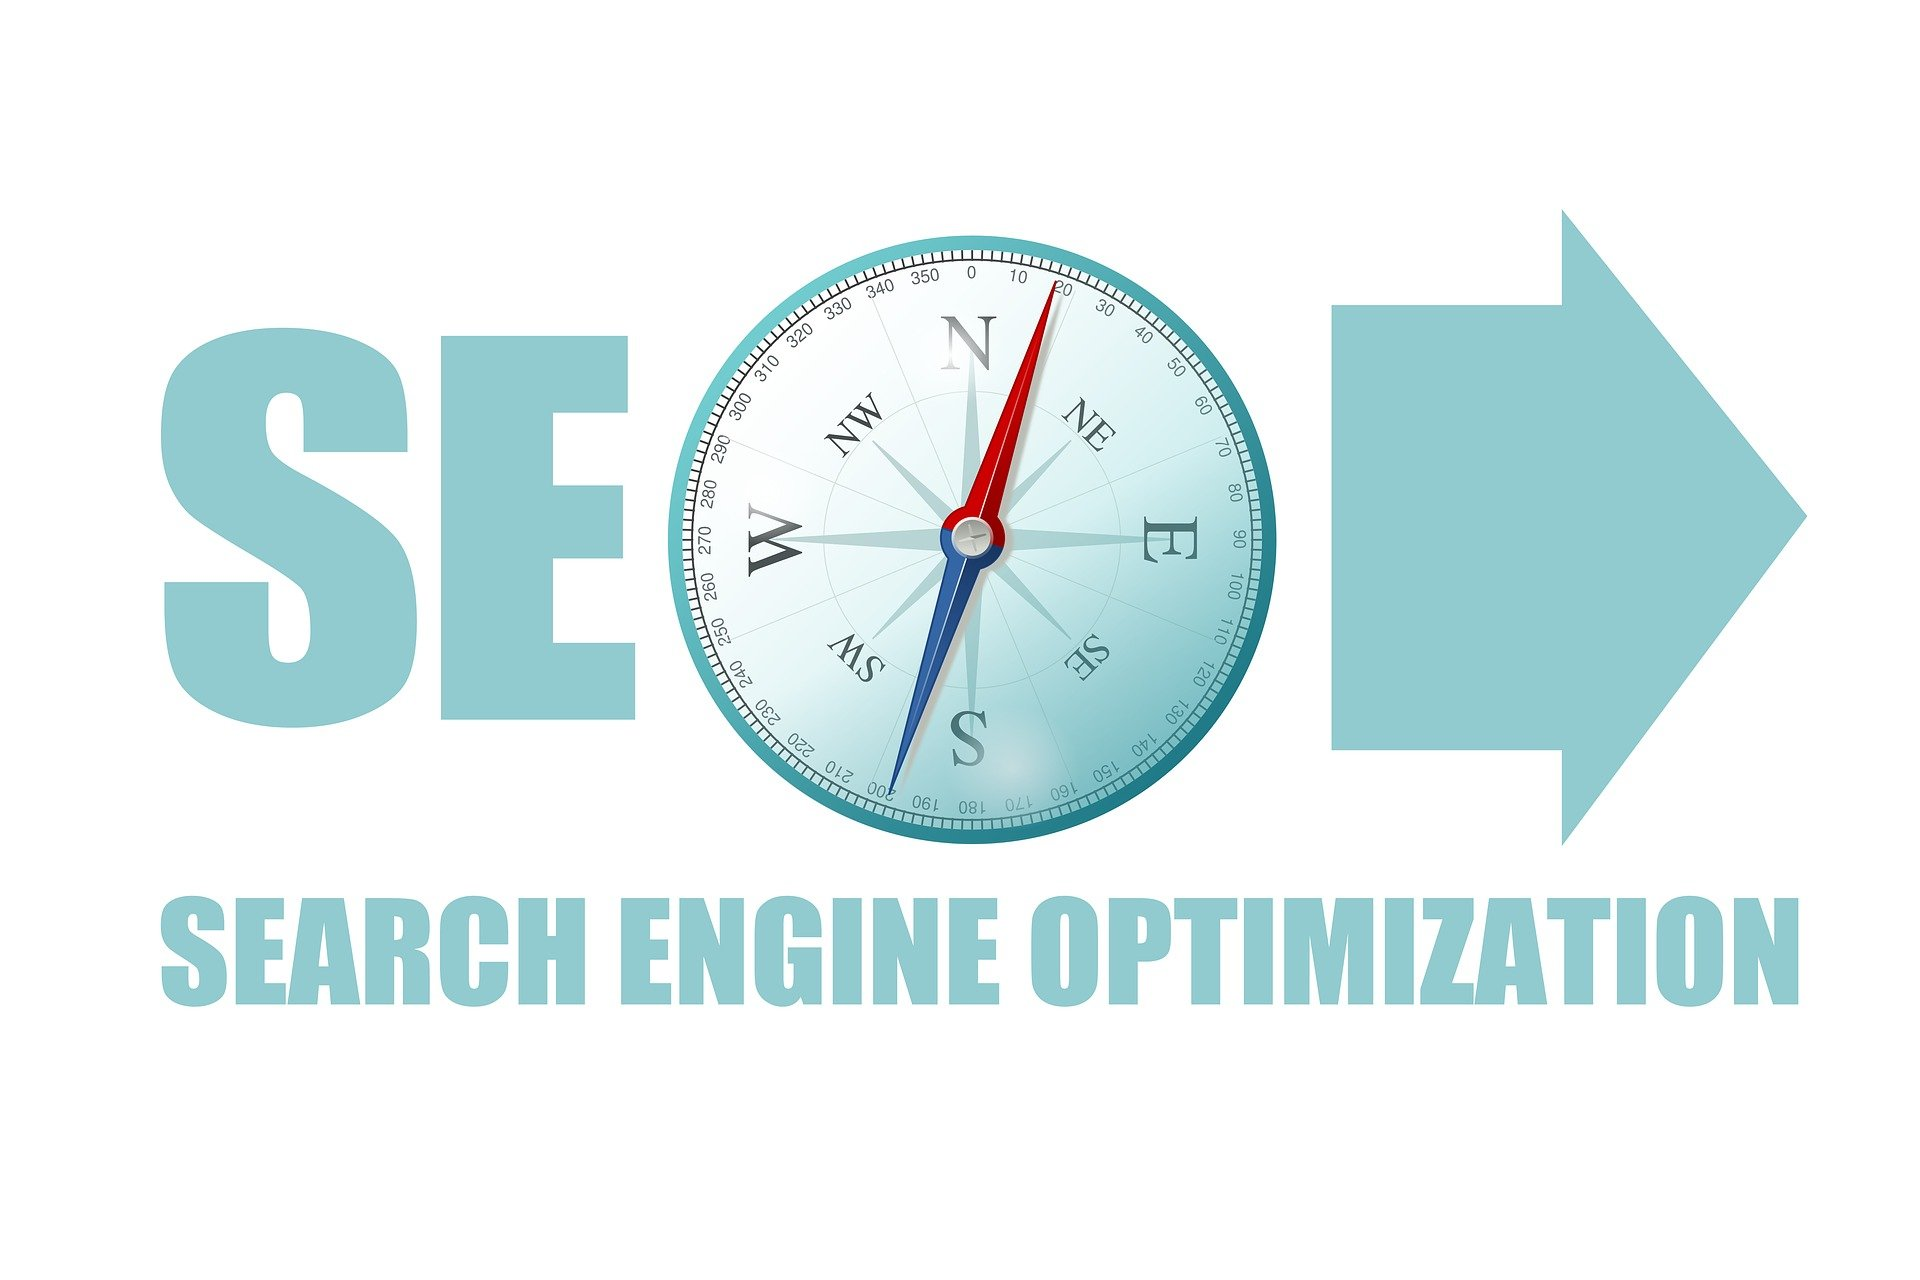 SEO search engine optimization, seo guide, seo techniques